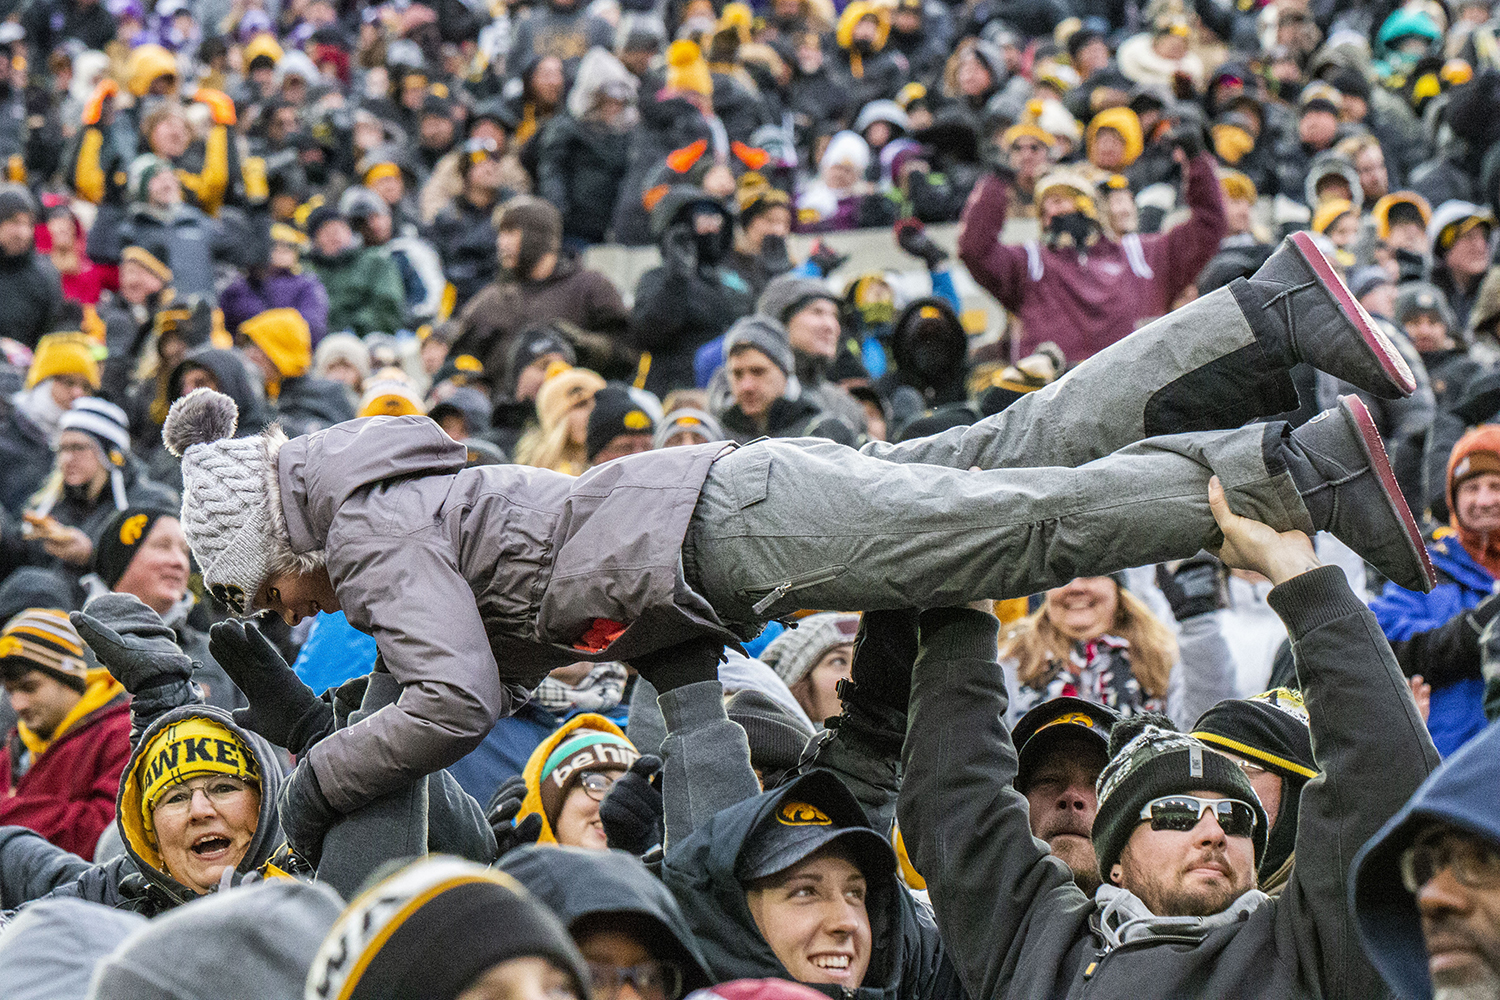 Fans+lift+a+child+for+the+%22Burrito+Lift%22+during+the+Iowa%2FNorthwestern+game+at+Kinnick+Stadium+on+Saturday%2C+November+10%2C+2018.+The+Wildcats+defeated+the+Hawkeyes+14-10.+%28Katina+Zentz%2FThe+Daily+Iowan%29